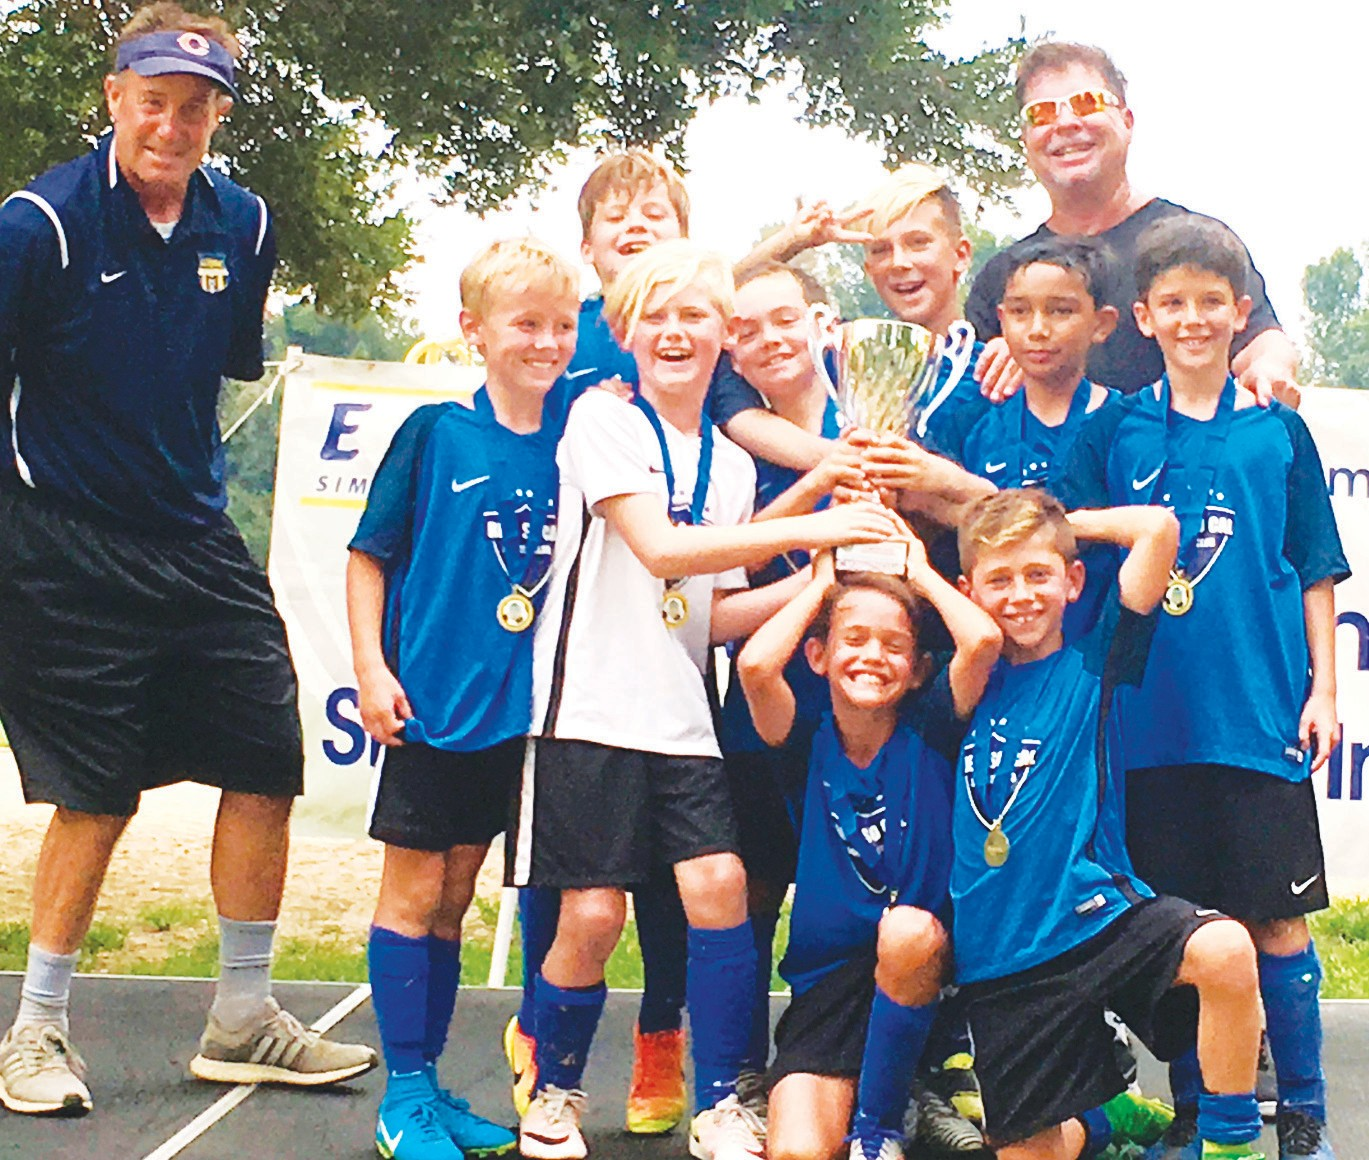 A REAL SWEET WIN—Real SoCal North Ranch boy's U-10 soccer team winsfirst place in the 2017 Simi Valley Labor Day Invitational Tournament at 9-2. Celebrating the victory with medals and trophy are director of coaching Mike Evans, Liam Lambert, Jerry Shifman, Justice Sullivan, Braeden Wynalda, Kaleb Nehdar, coach Kenny Dapello, Santiago Diaz, Todd Norton, Daniel Geft and Ren Thomas.